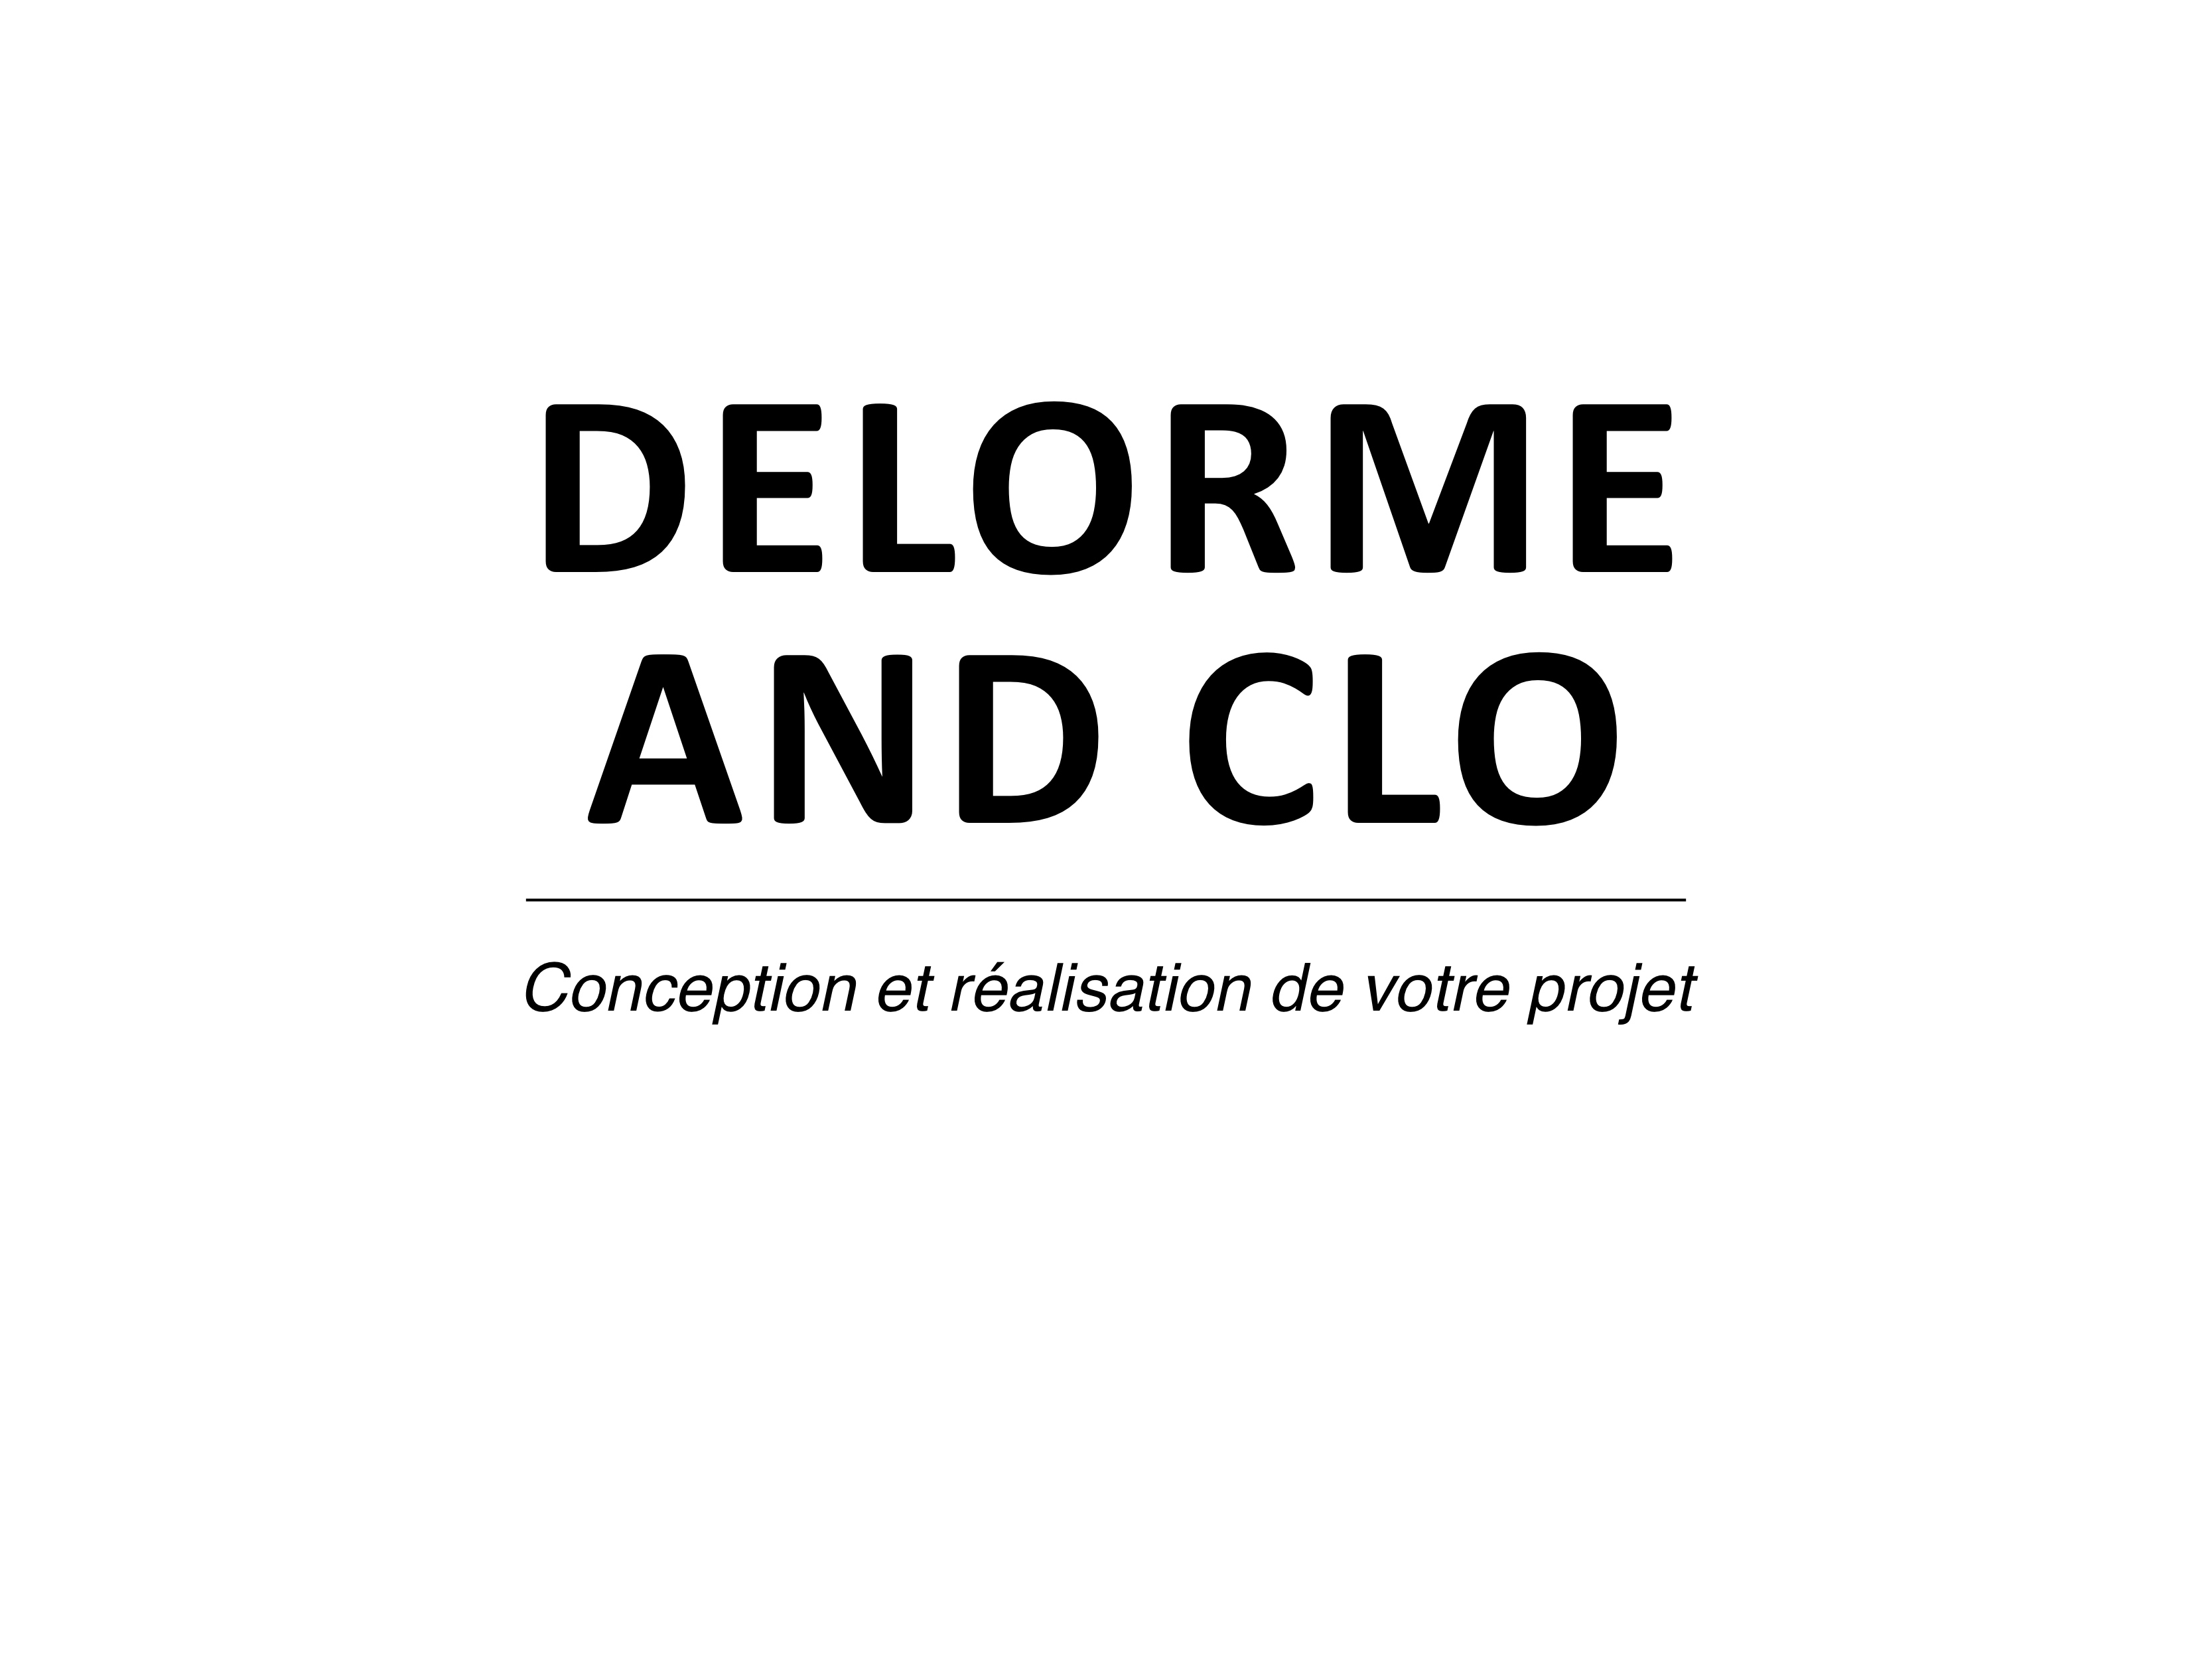 L'agence DELORME AND CLO